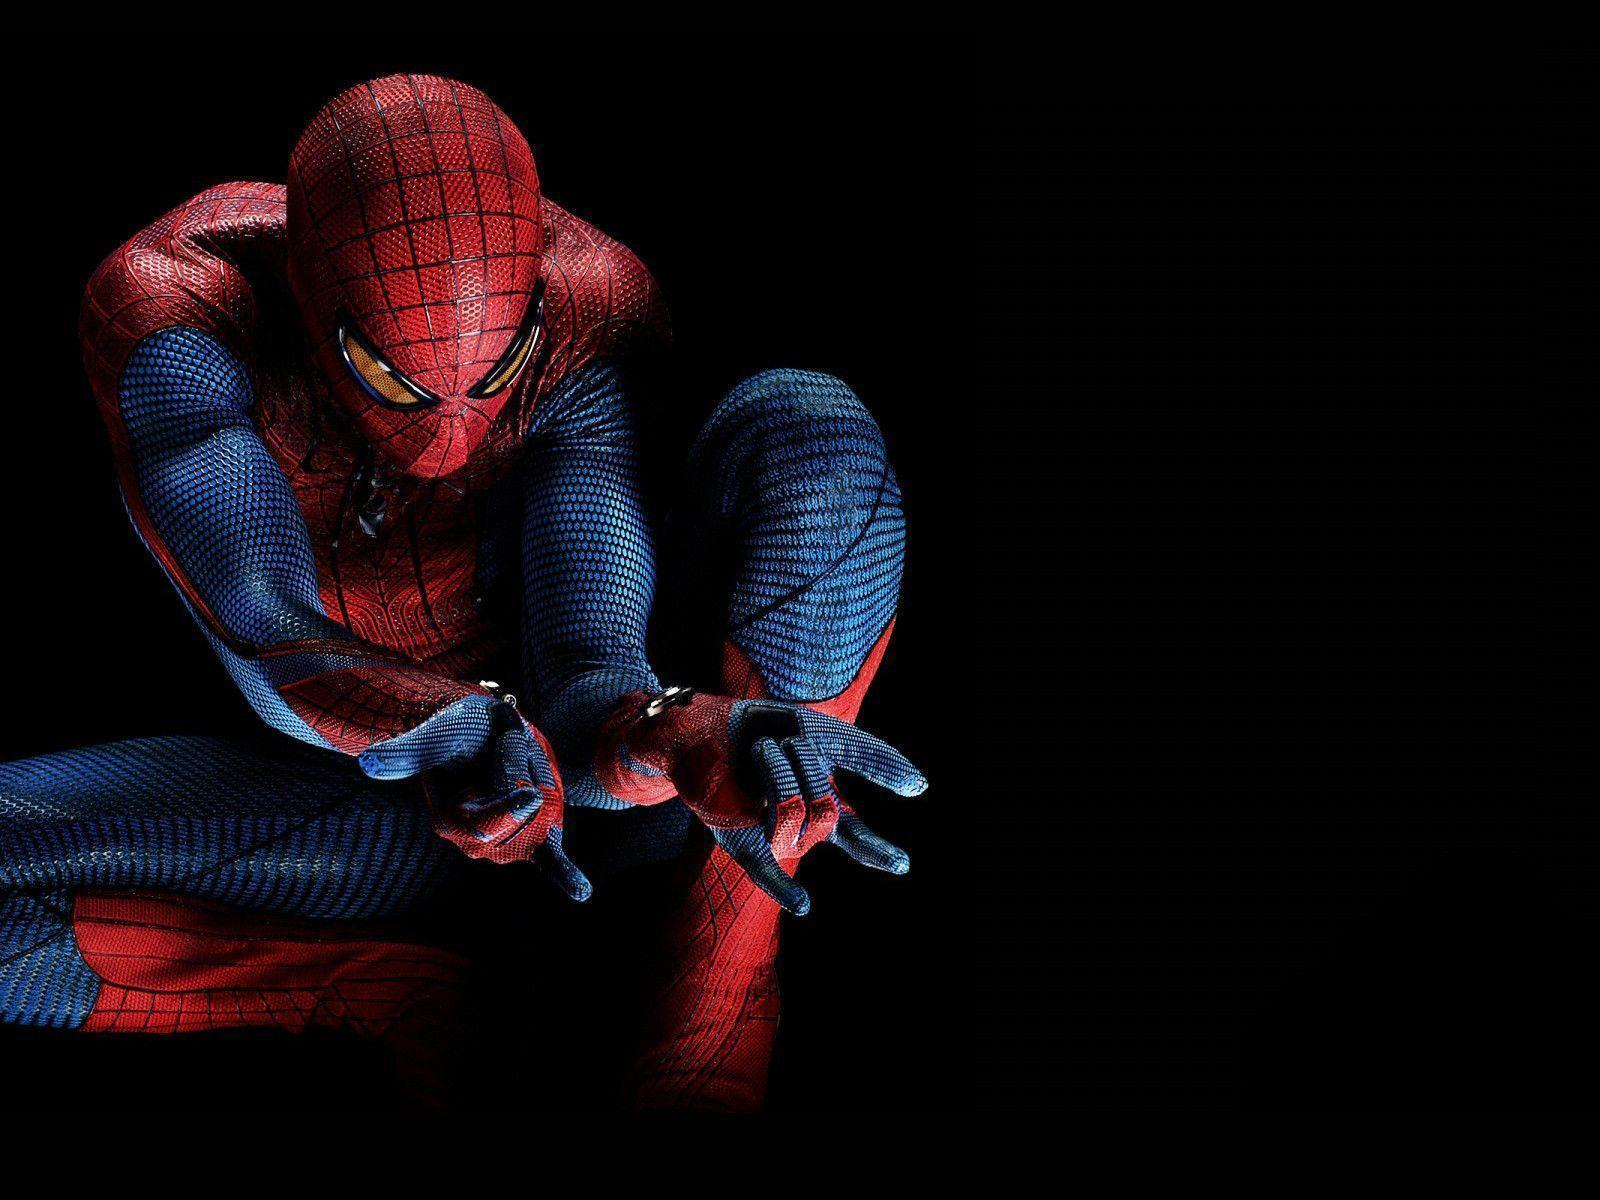 Amazing Spider Man 4 Wallpapers | HD Wallpapers